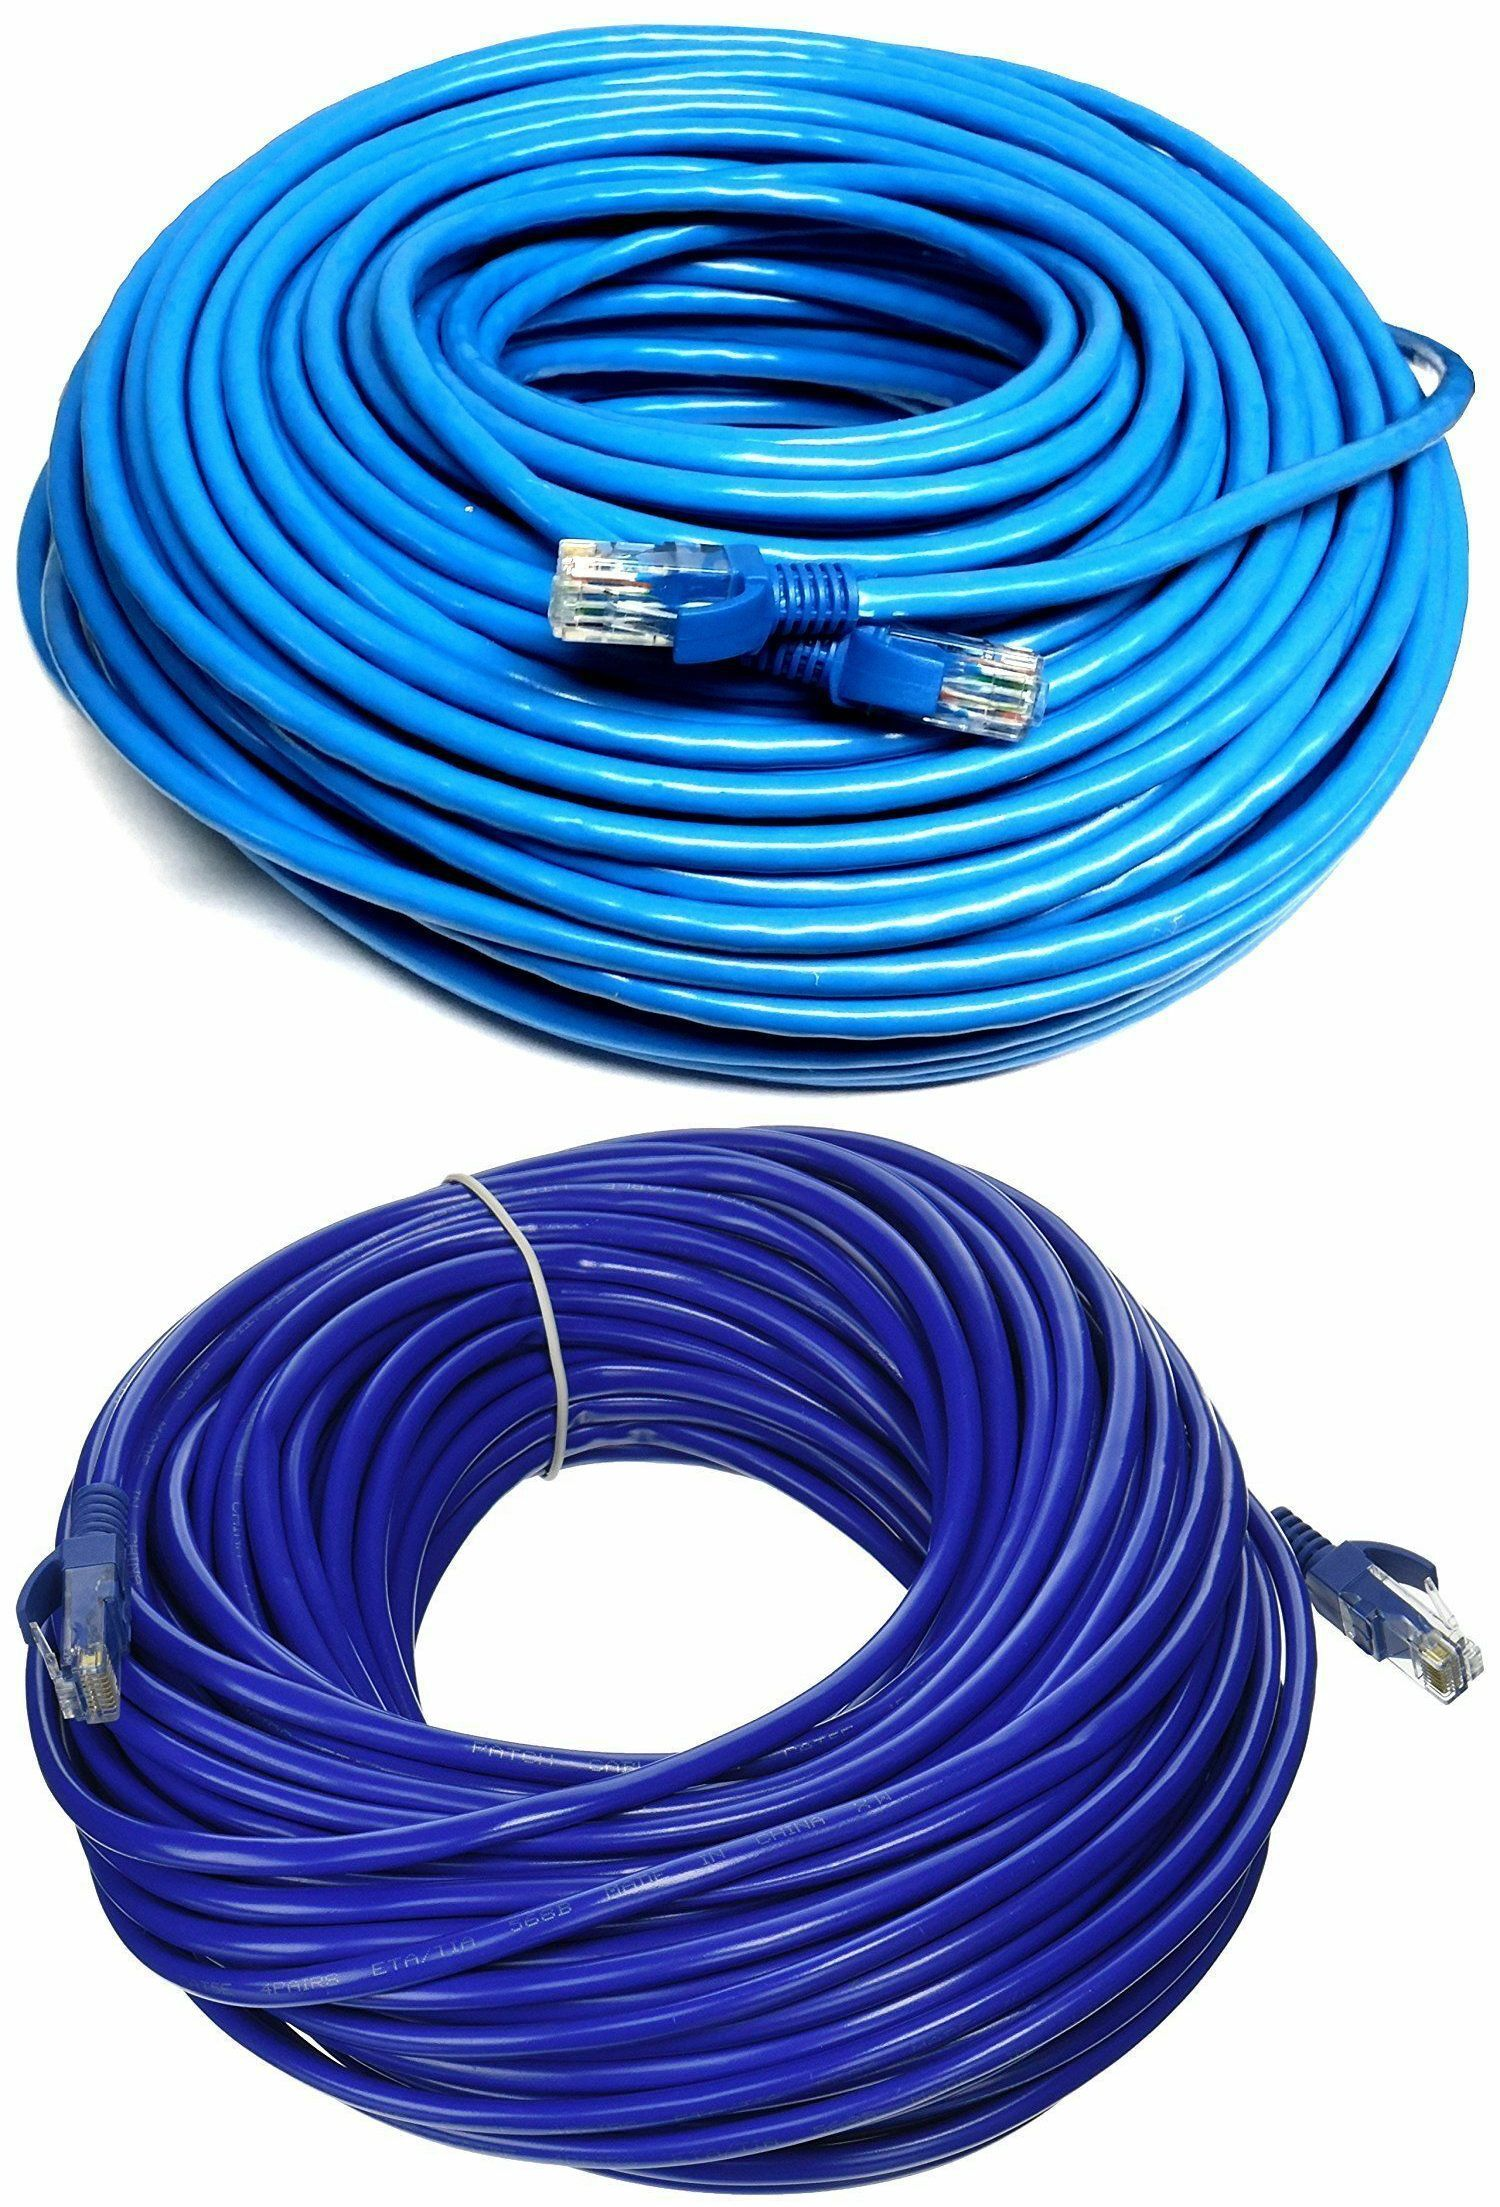 10 Pack Lot 25ft CAT6 Ethernet Network LAN Patch Cable Cord 550 MHz RJ45 Blue